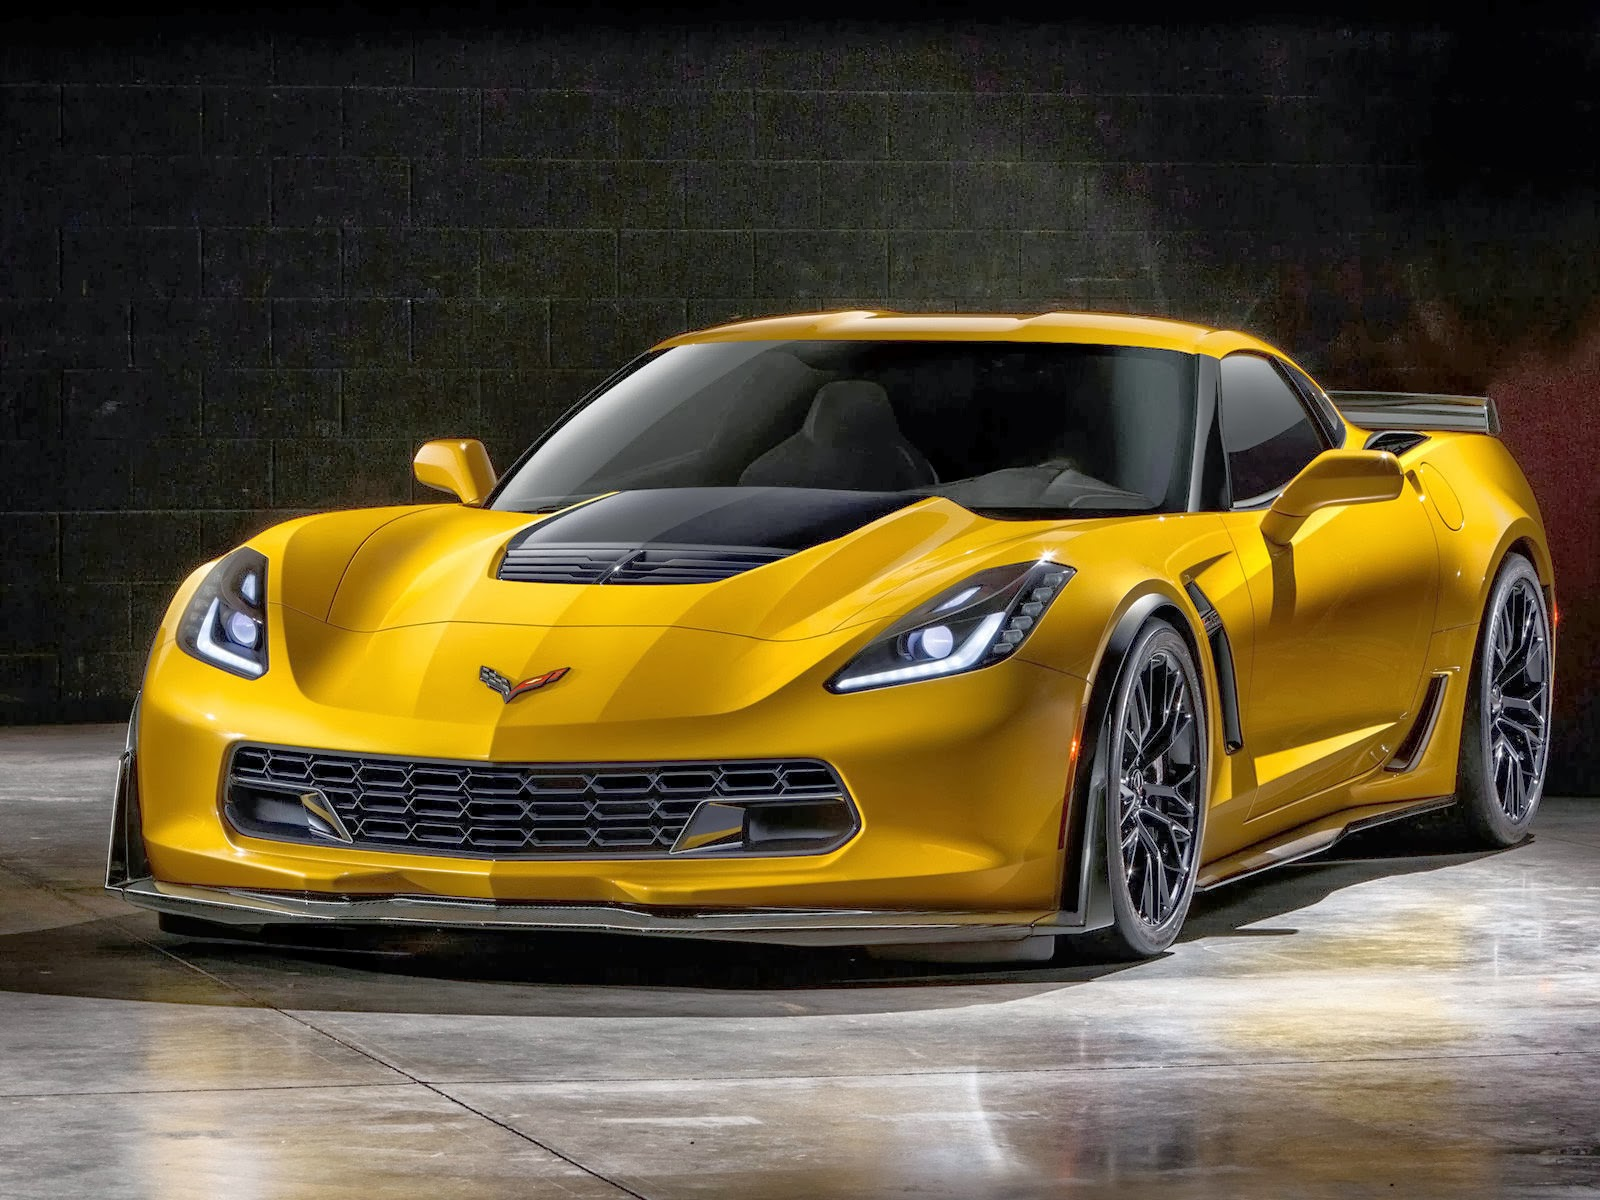 Sports Car Wallpapers High Resolution Chevrolet Sports Cars Photos 9 Background